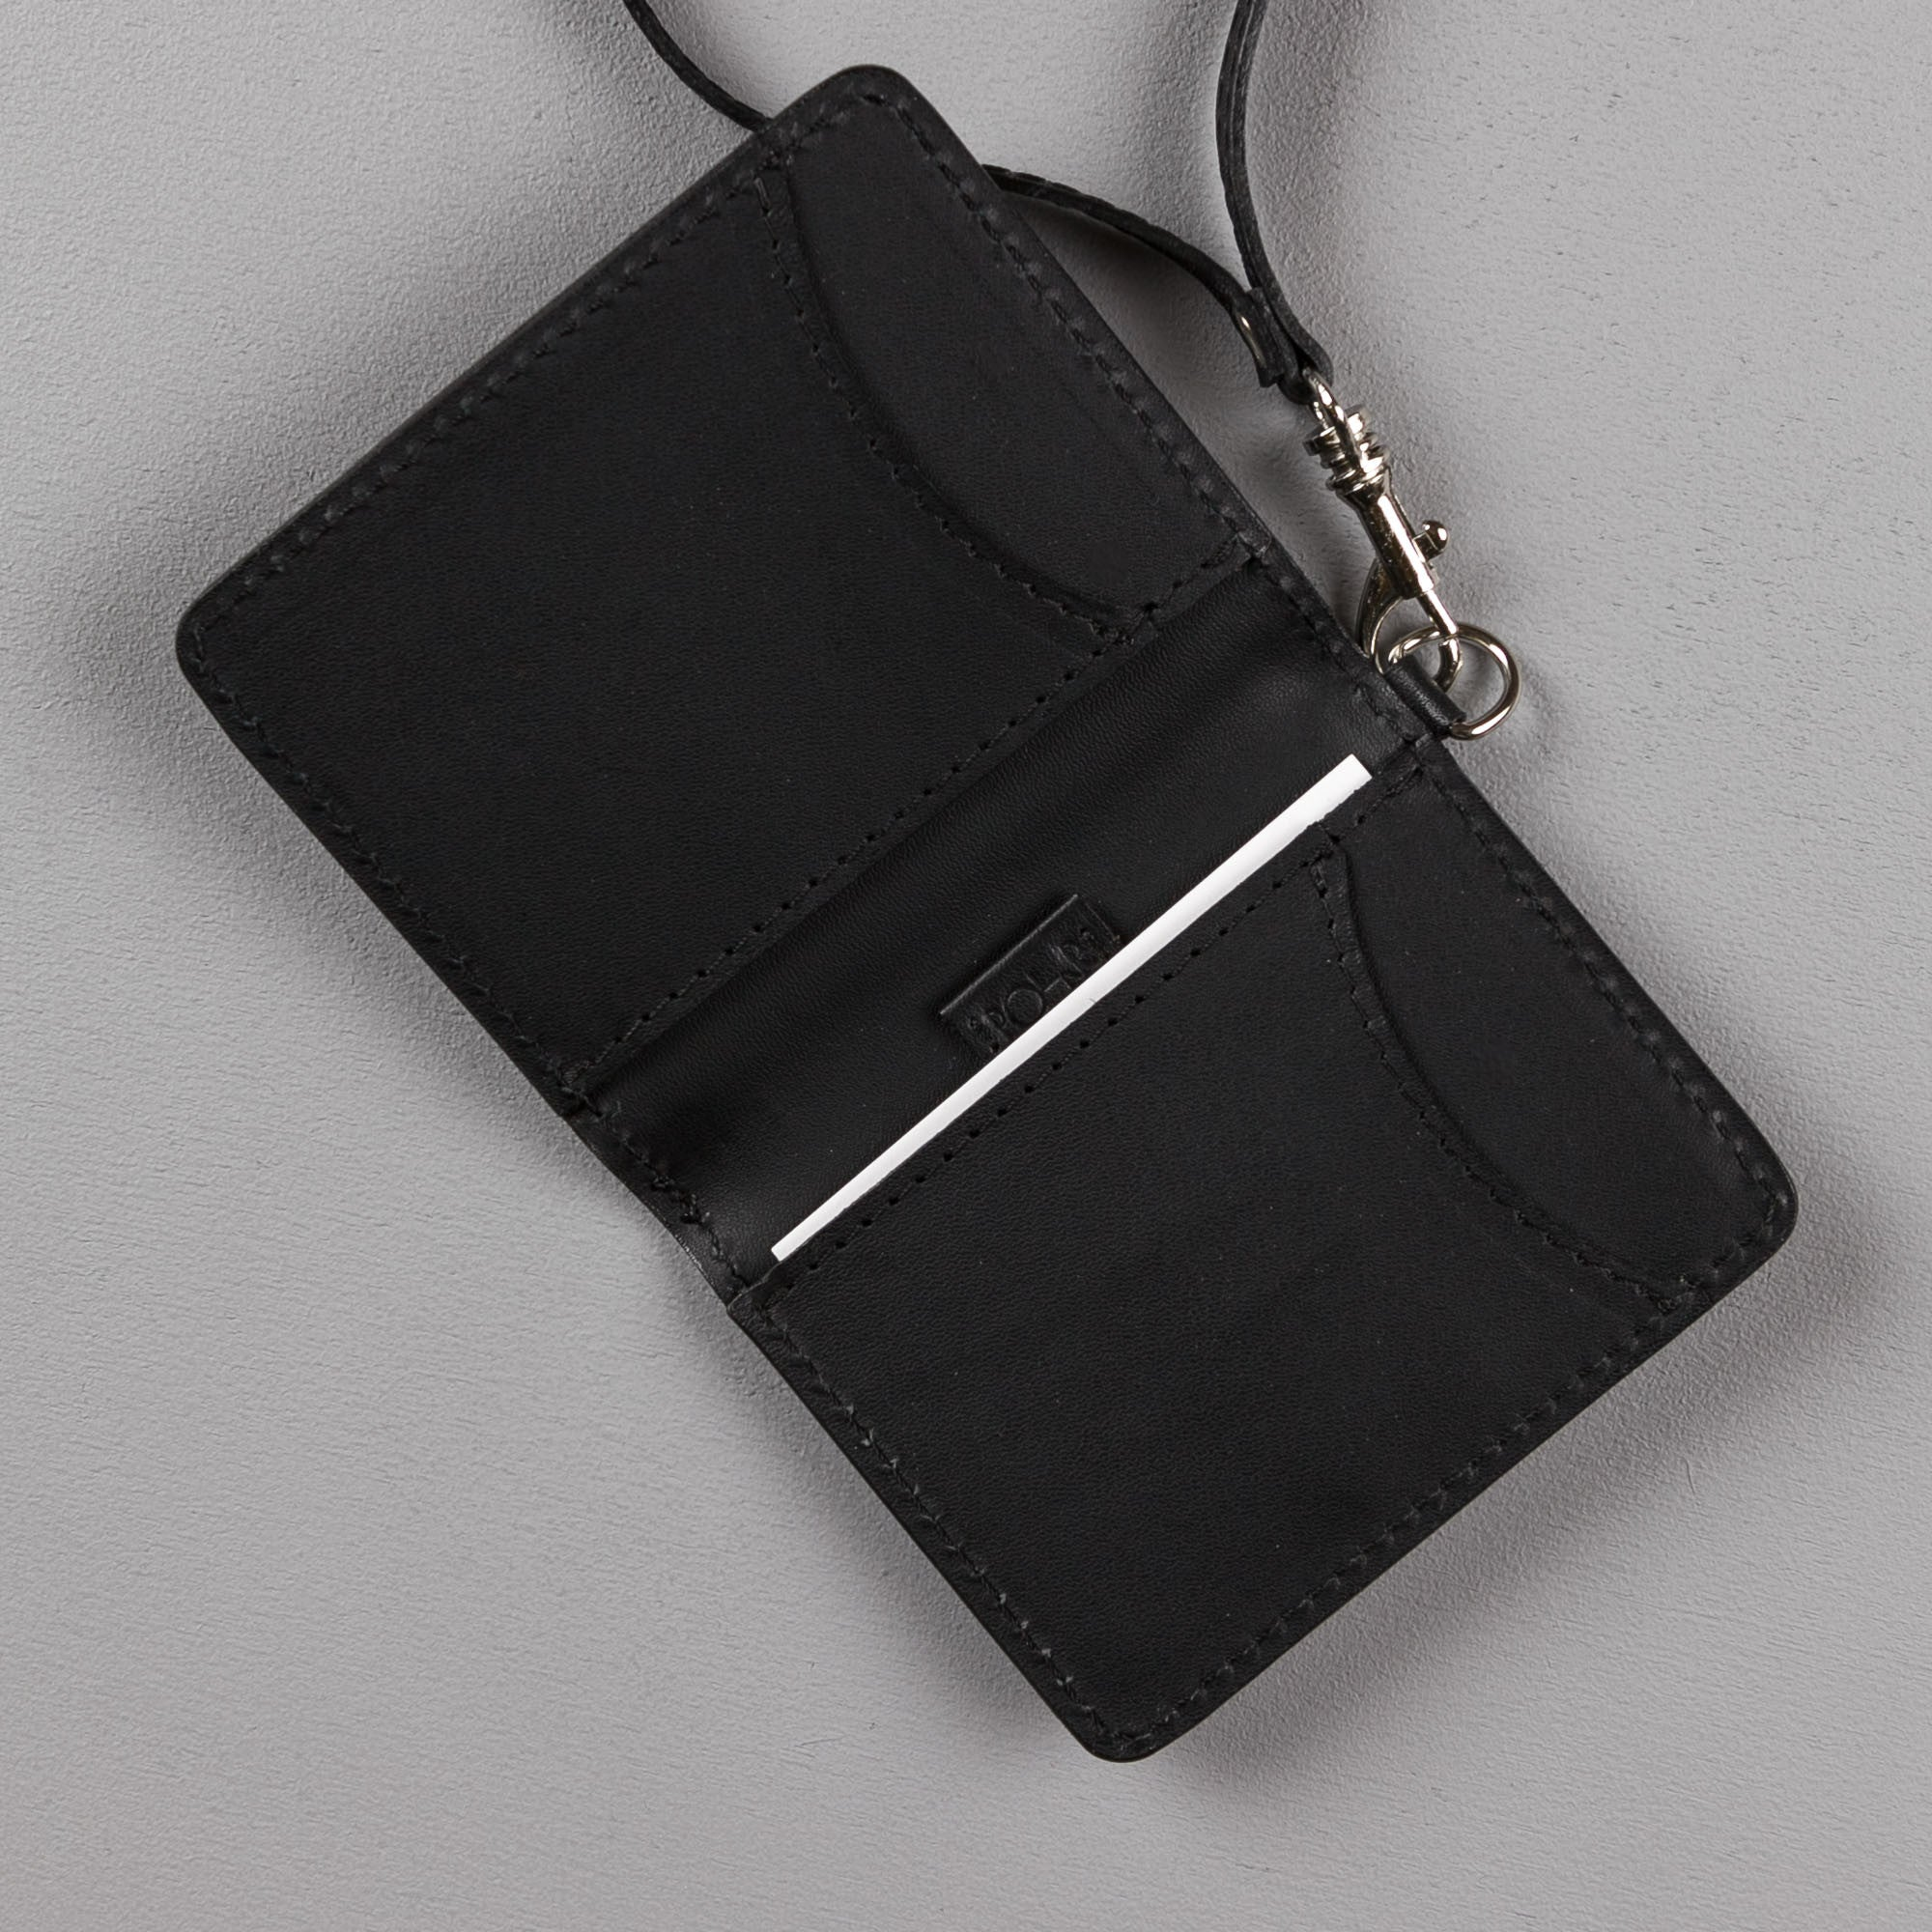 Polar Card Holder Wallet - Black